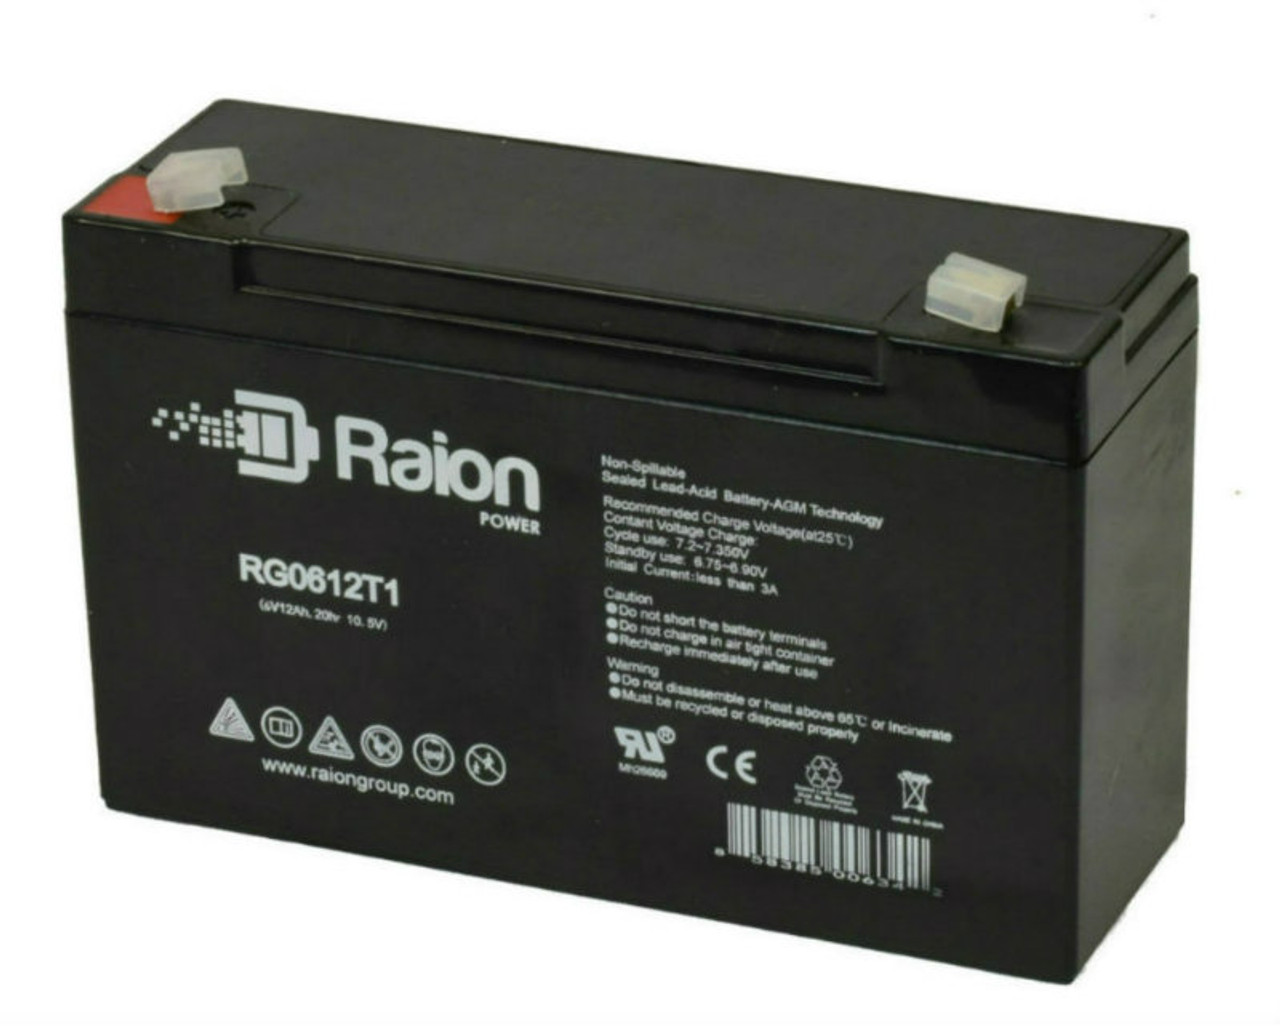 Raion Power RG06120T1 Replacement Battery Pack for National Power Corporation GT050R4 emergency light